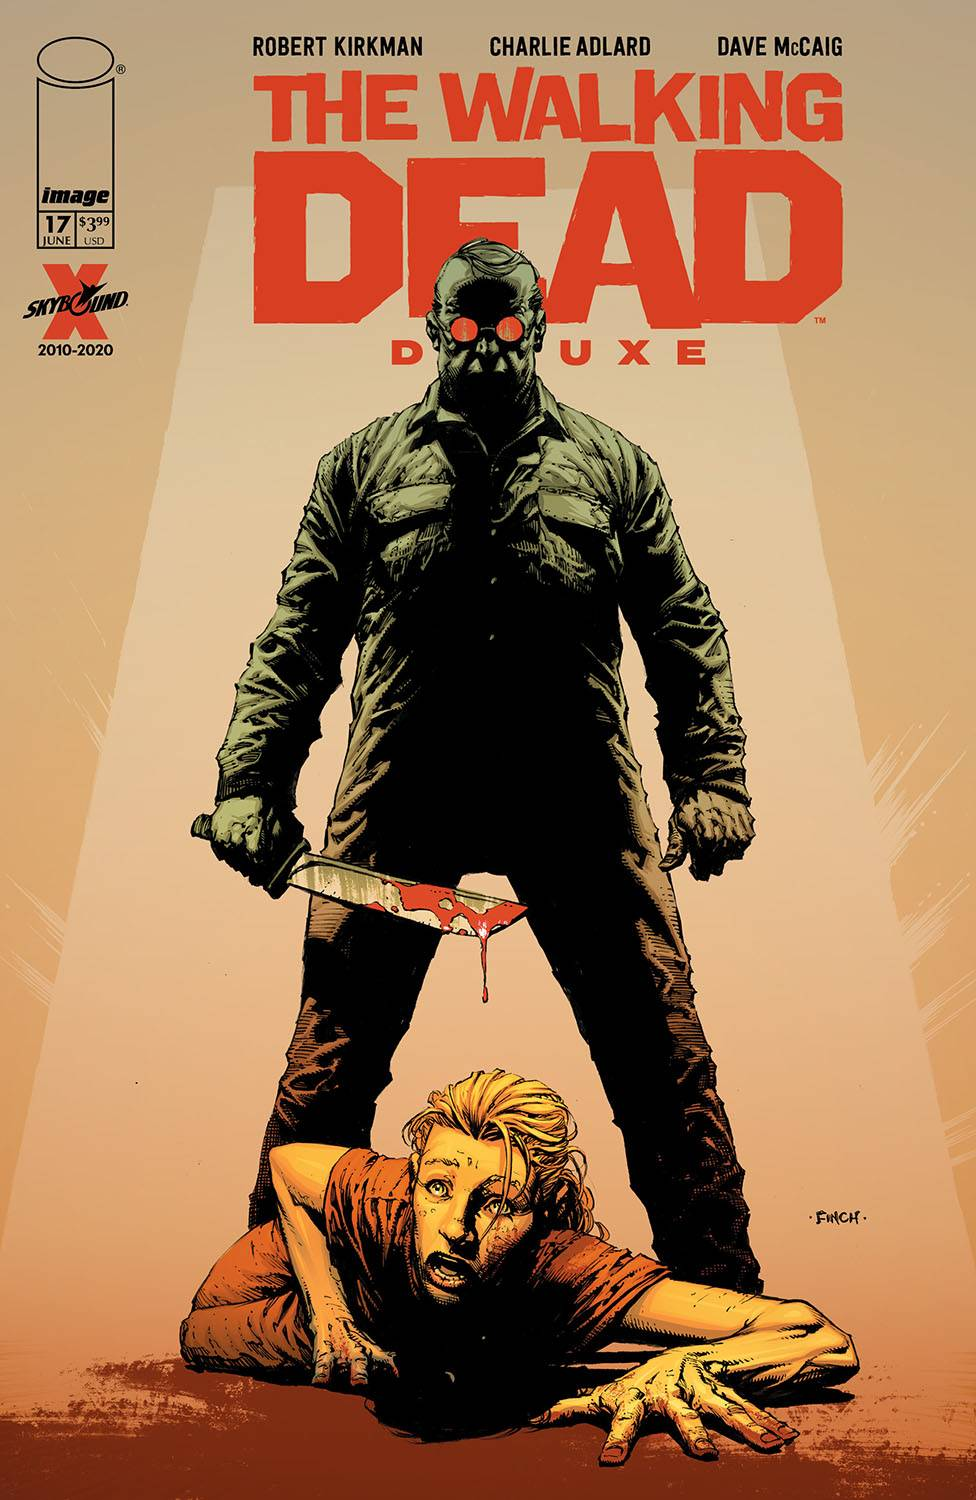 WALKING DEAD DLX #17 CVR A FINCH & MCCAIG (MR)